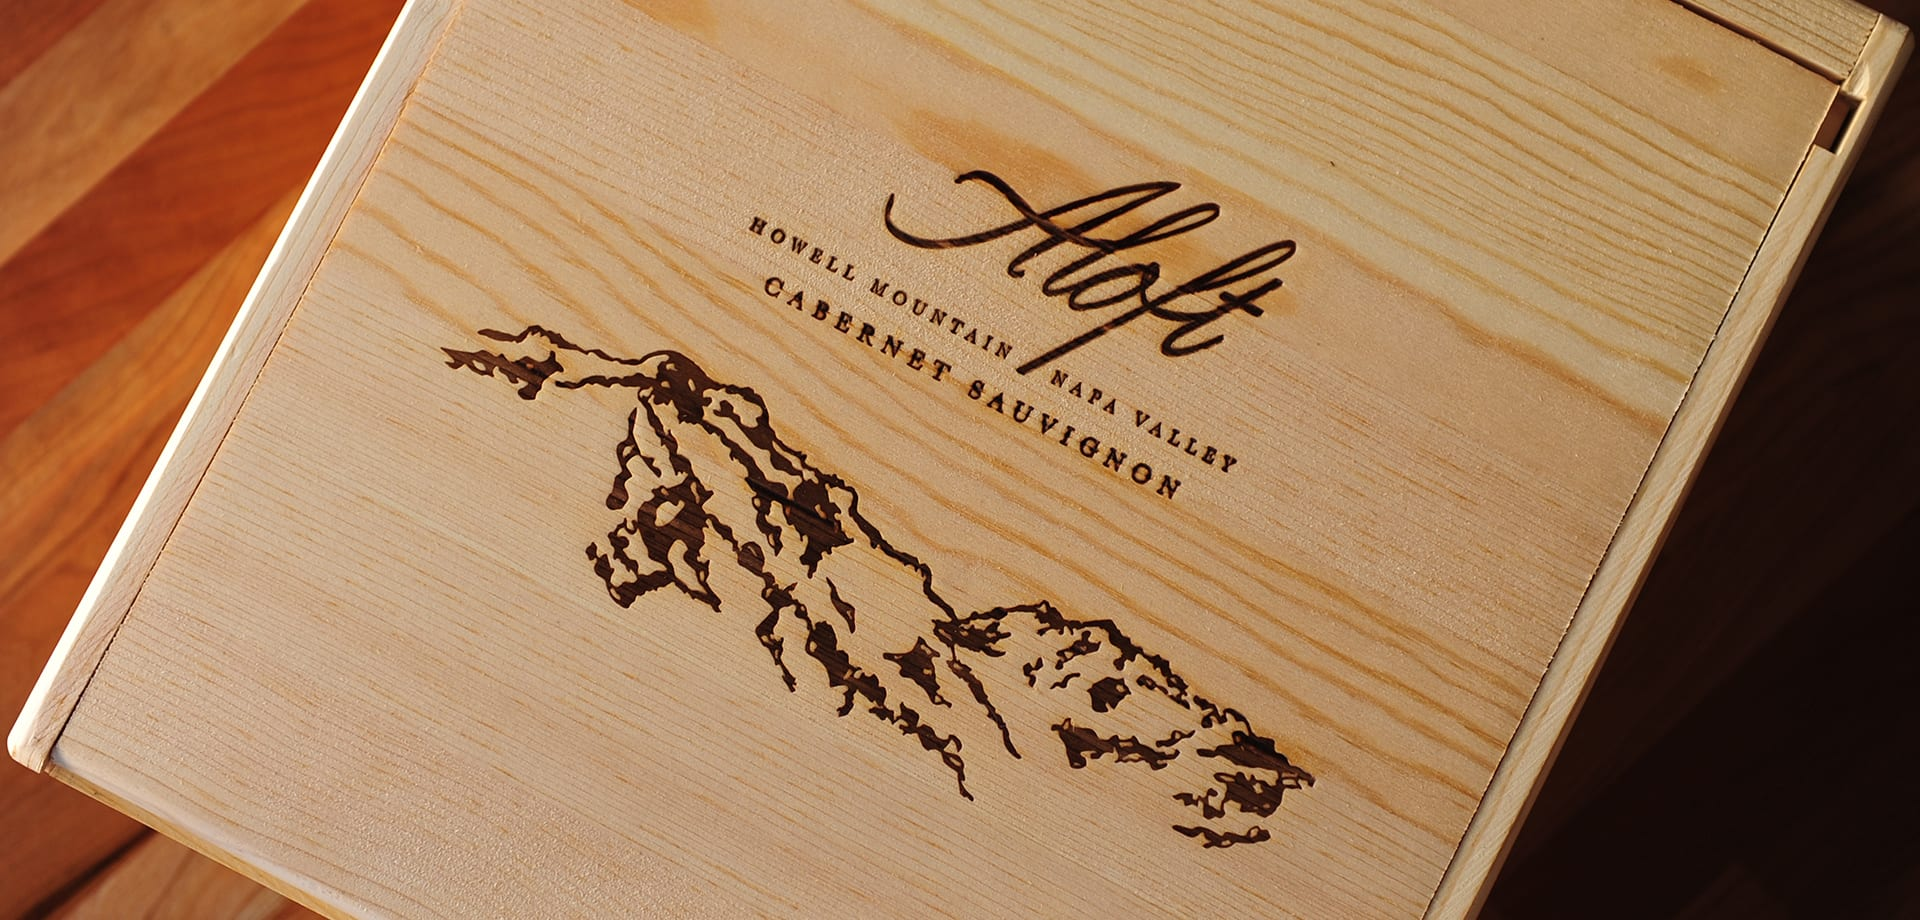 The top of a wooden case of Aloft Wine Cabernet Sauvignon.